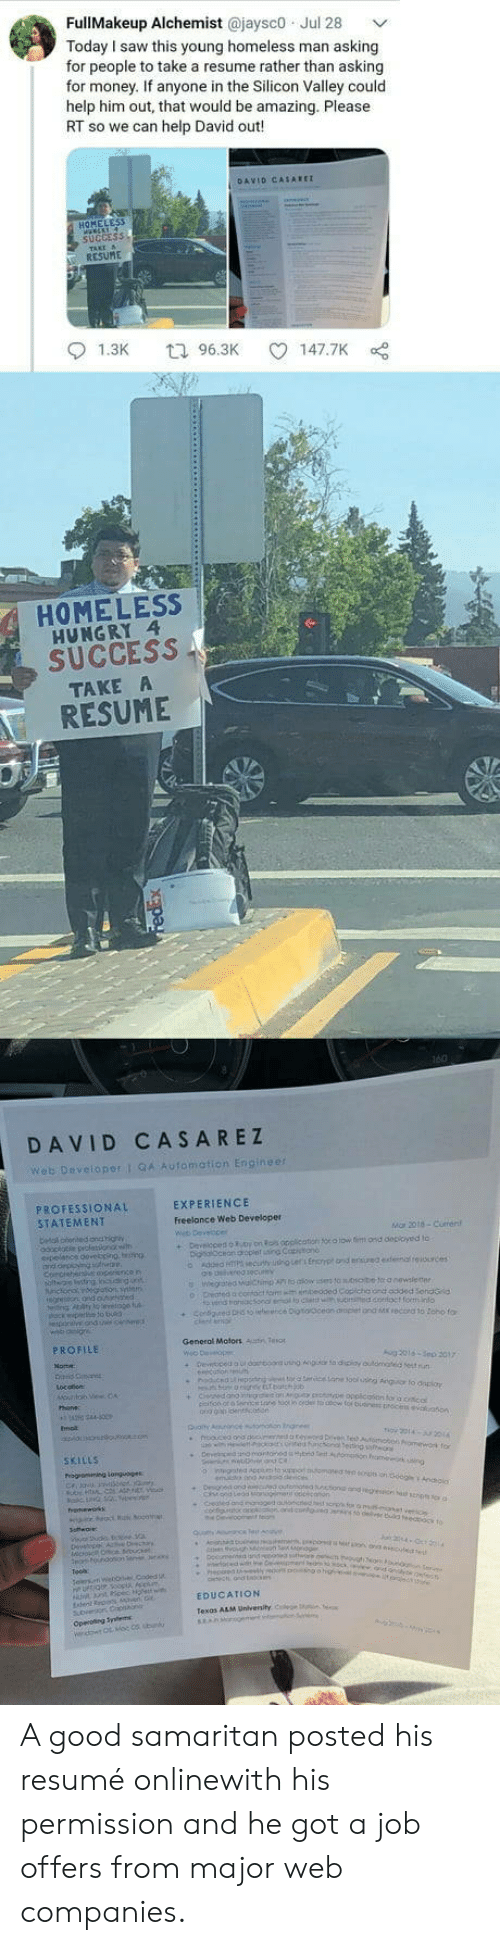 Web Developer: FullMakeup Alchemist @jaysco Jul 28  Today I saw this young homeless man asking  for people to take a resume rather than asking  for money. If anyone in the Silicon Valley could  help him out, that would be amazing. Please  RT so we can help David out!  DAVID CASAREI  HOMELESS  SUcCEss  RESUME  01.3K  96.3K  147.7K  HOMELESS  HUNGRY 4  SUCCESS  TAKE  RESUME  DAVID CASAREZ  web Developer 1 9Automation Engine  PROFESSIONAL  STATEMENT  EXPERIENCE  Freelance Web Developer  Mo, 2018-Grenl  PROFILE  General Moloes Aut  SKiuus  EDUCATION A good samaritan posted his resumé onlinewith his permission and he got a job offers from major web companies.